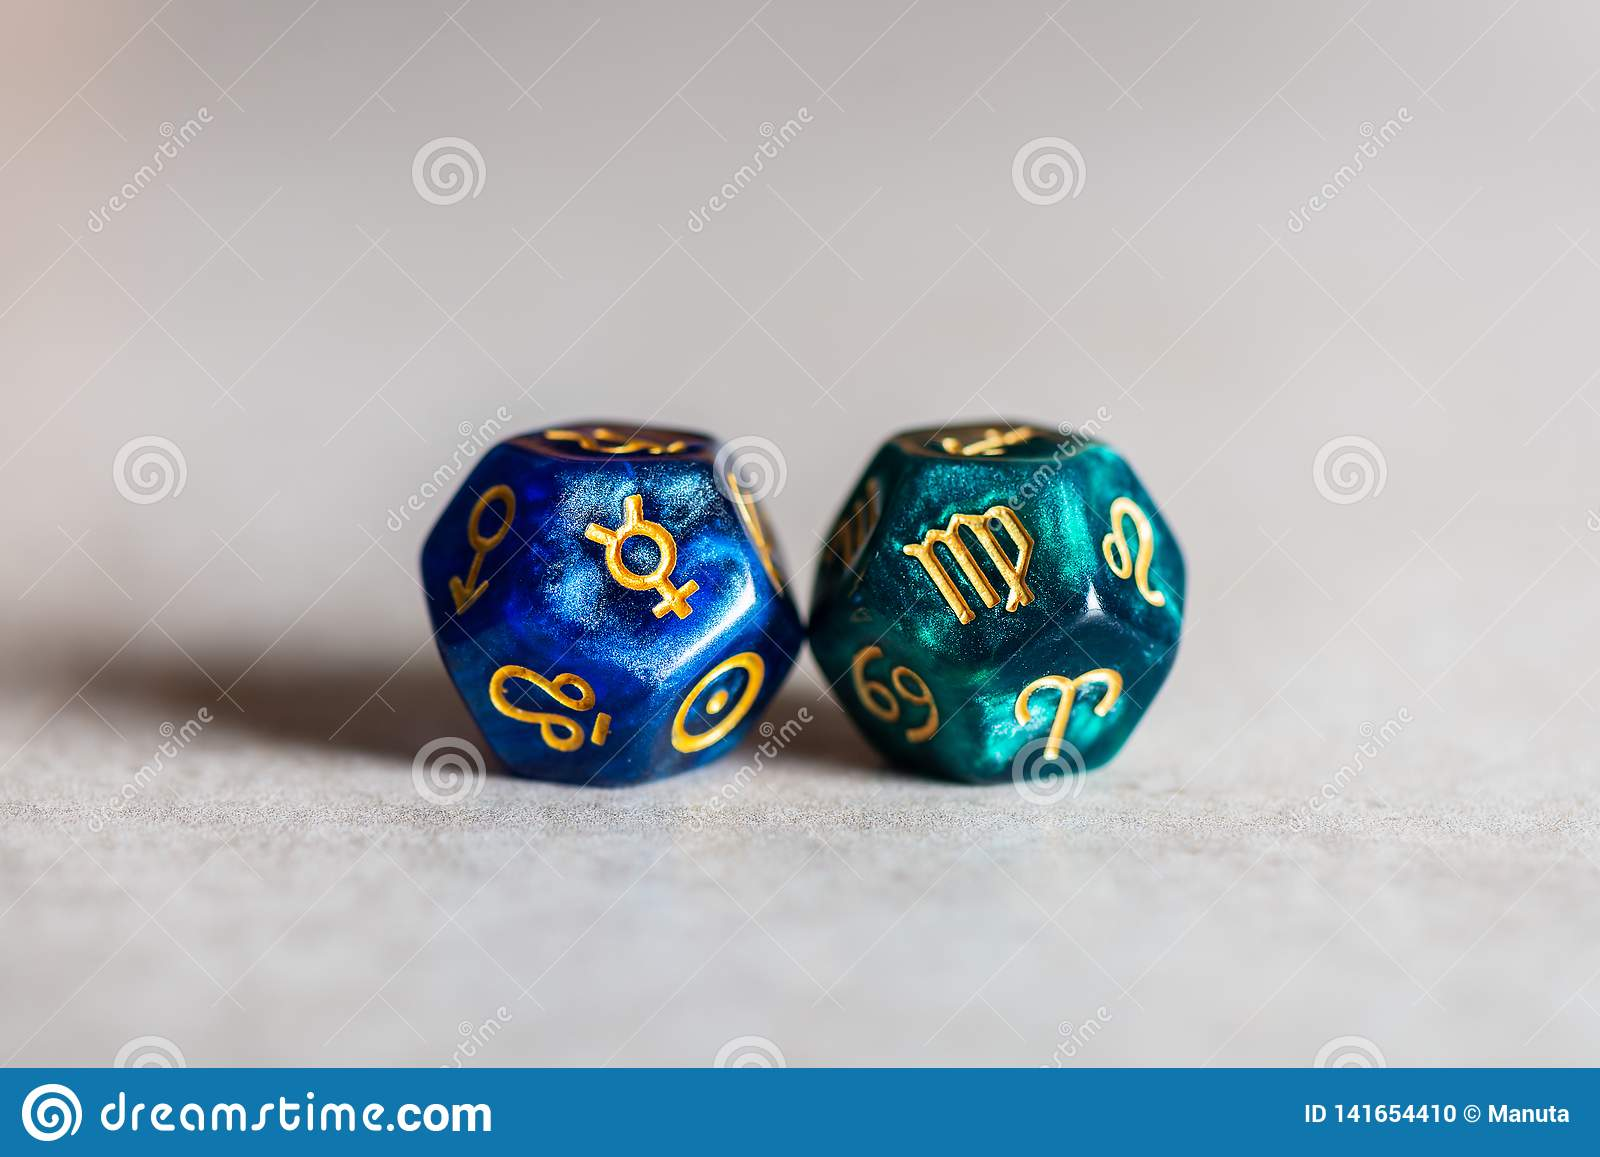 Astrology Dice with zodiac symbol of Virgo and its ruling planet Mercury